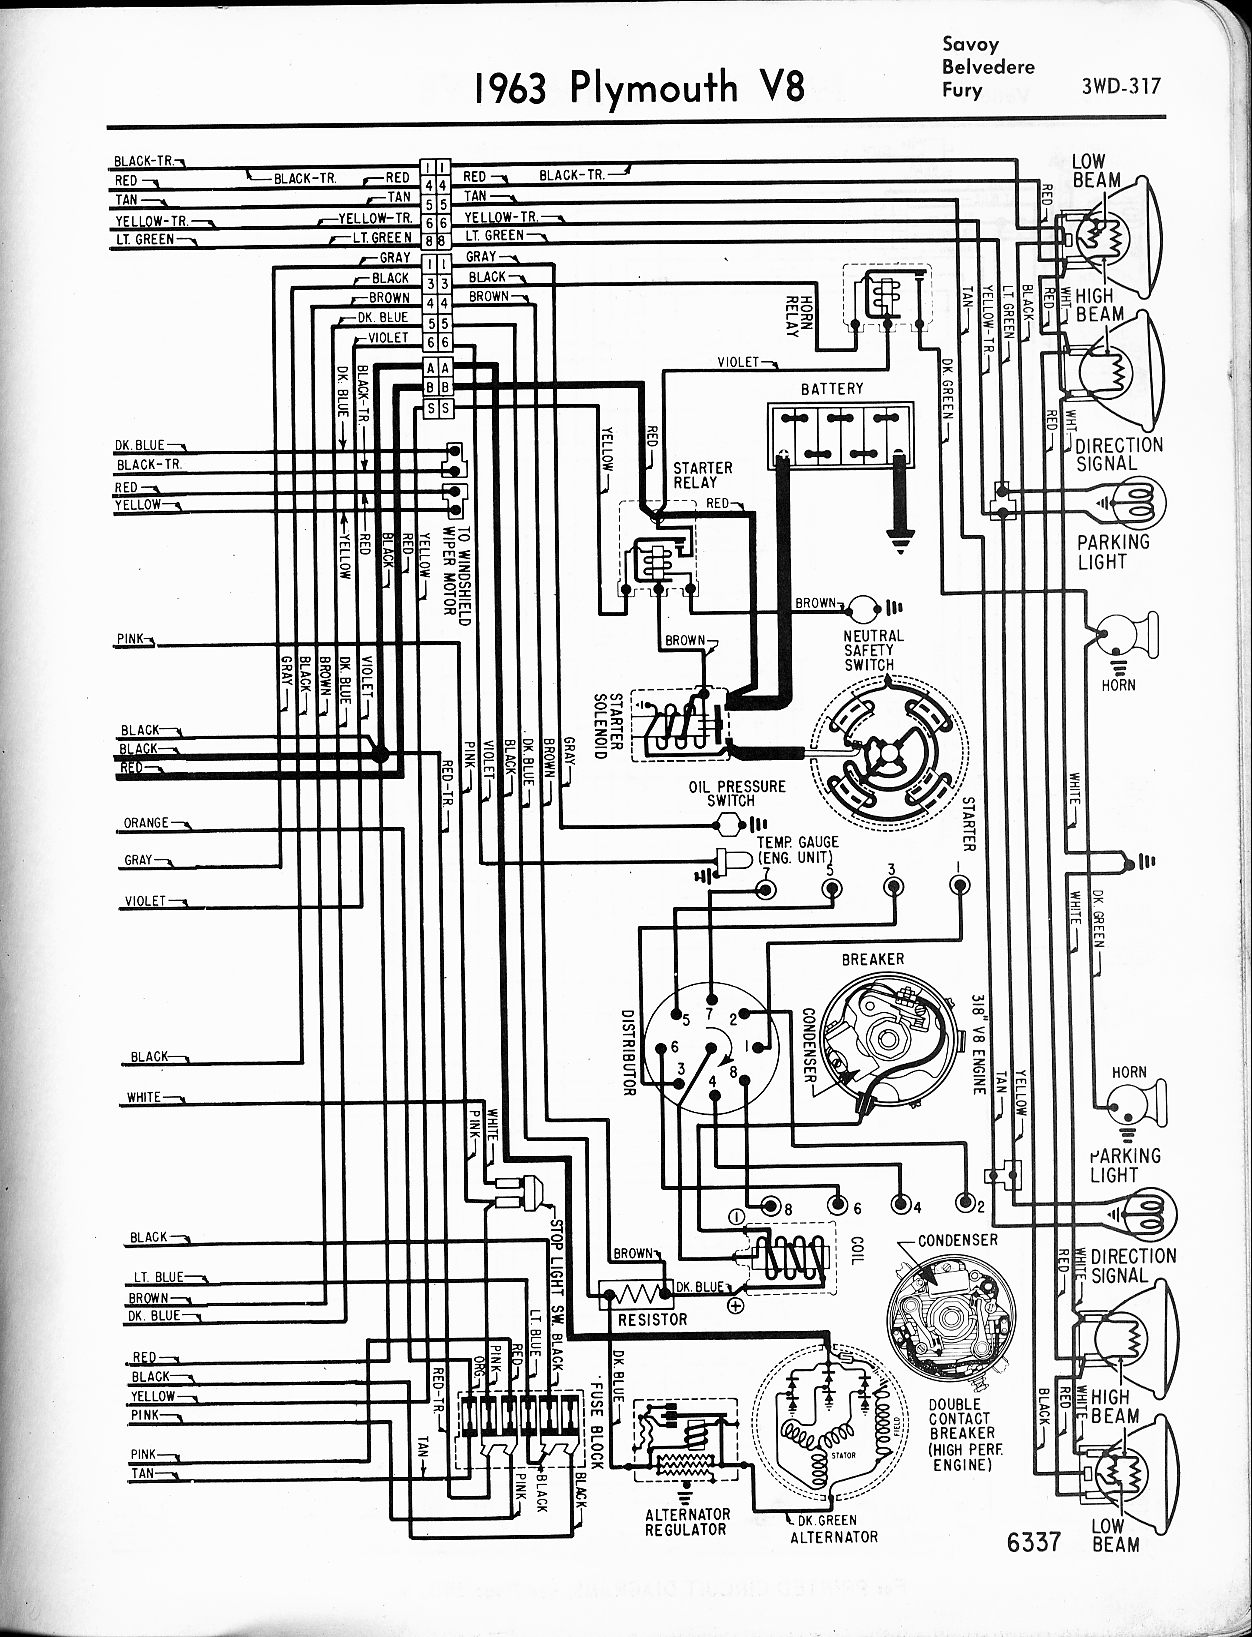 ZL_9417] Starting Circuit Diagram For The 1955 Plymouth All Models Schematic  WiringEopsy Scoba Mohammedshrine Librar Wiring 101